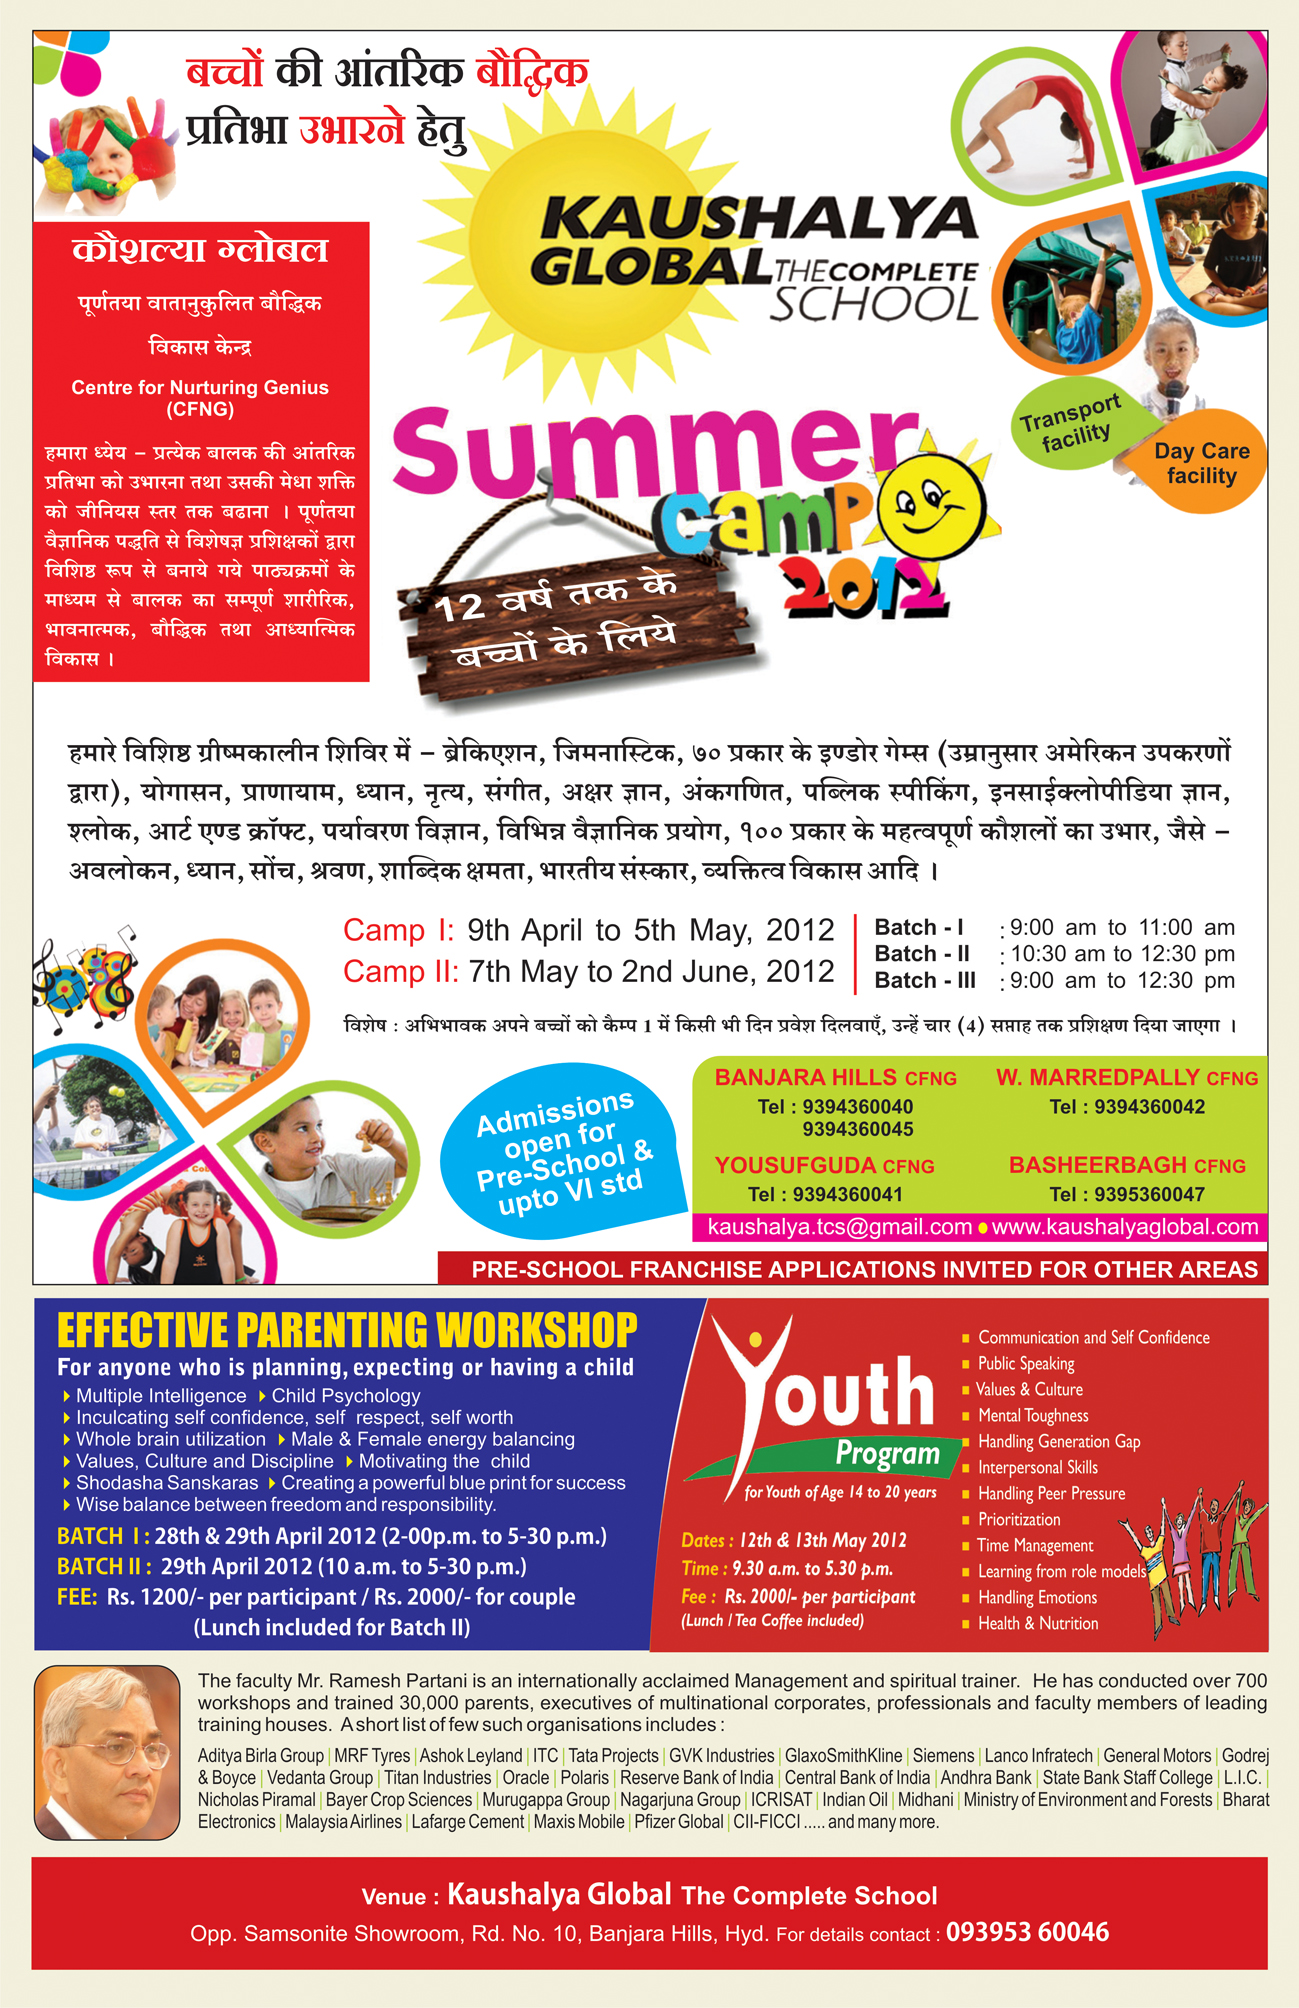 Kaushalya Global School Summer Camp Full Page Ad 23-4-2012